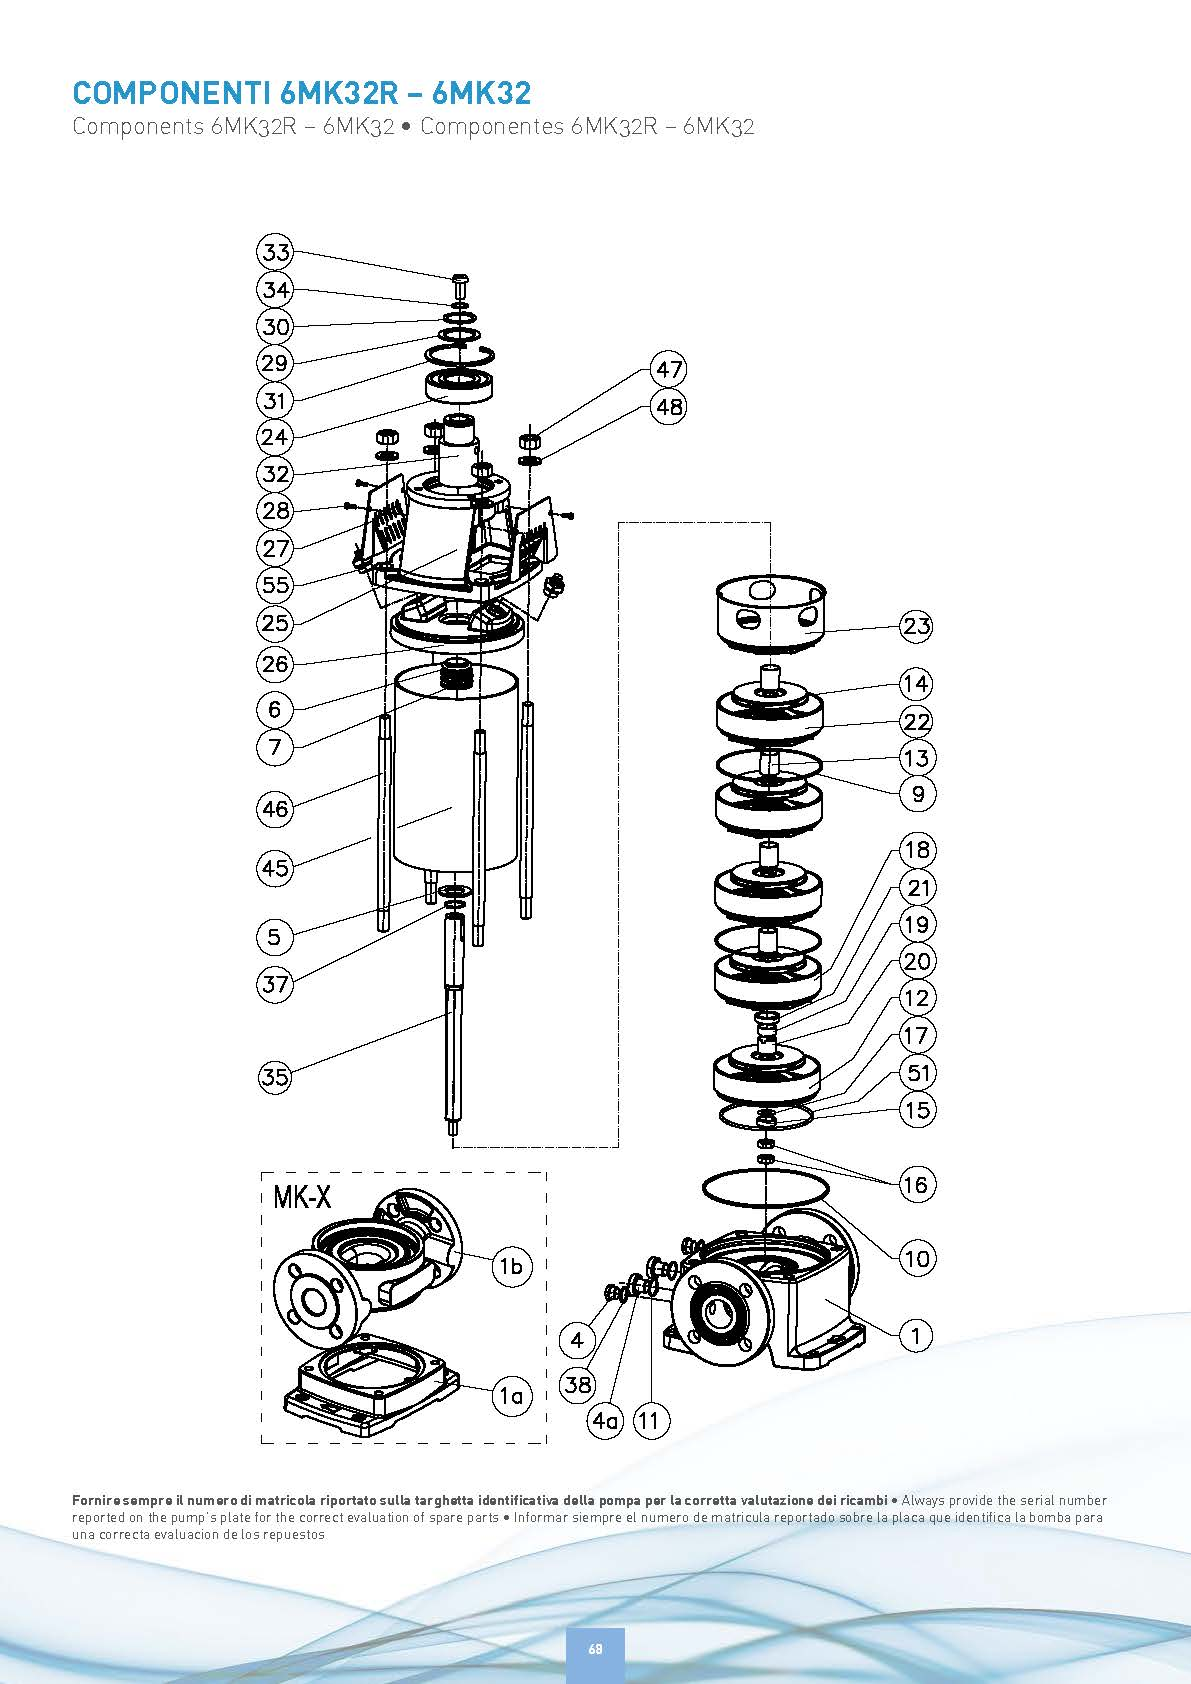 Vertical Multi-stage Electric Pump — 2 HP, 1.5 Kw, 460V - SAER 6PMK 32/4 - Components